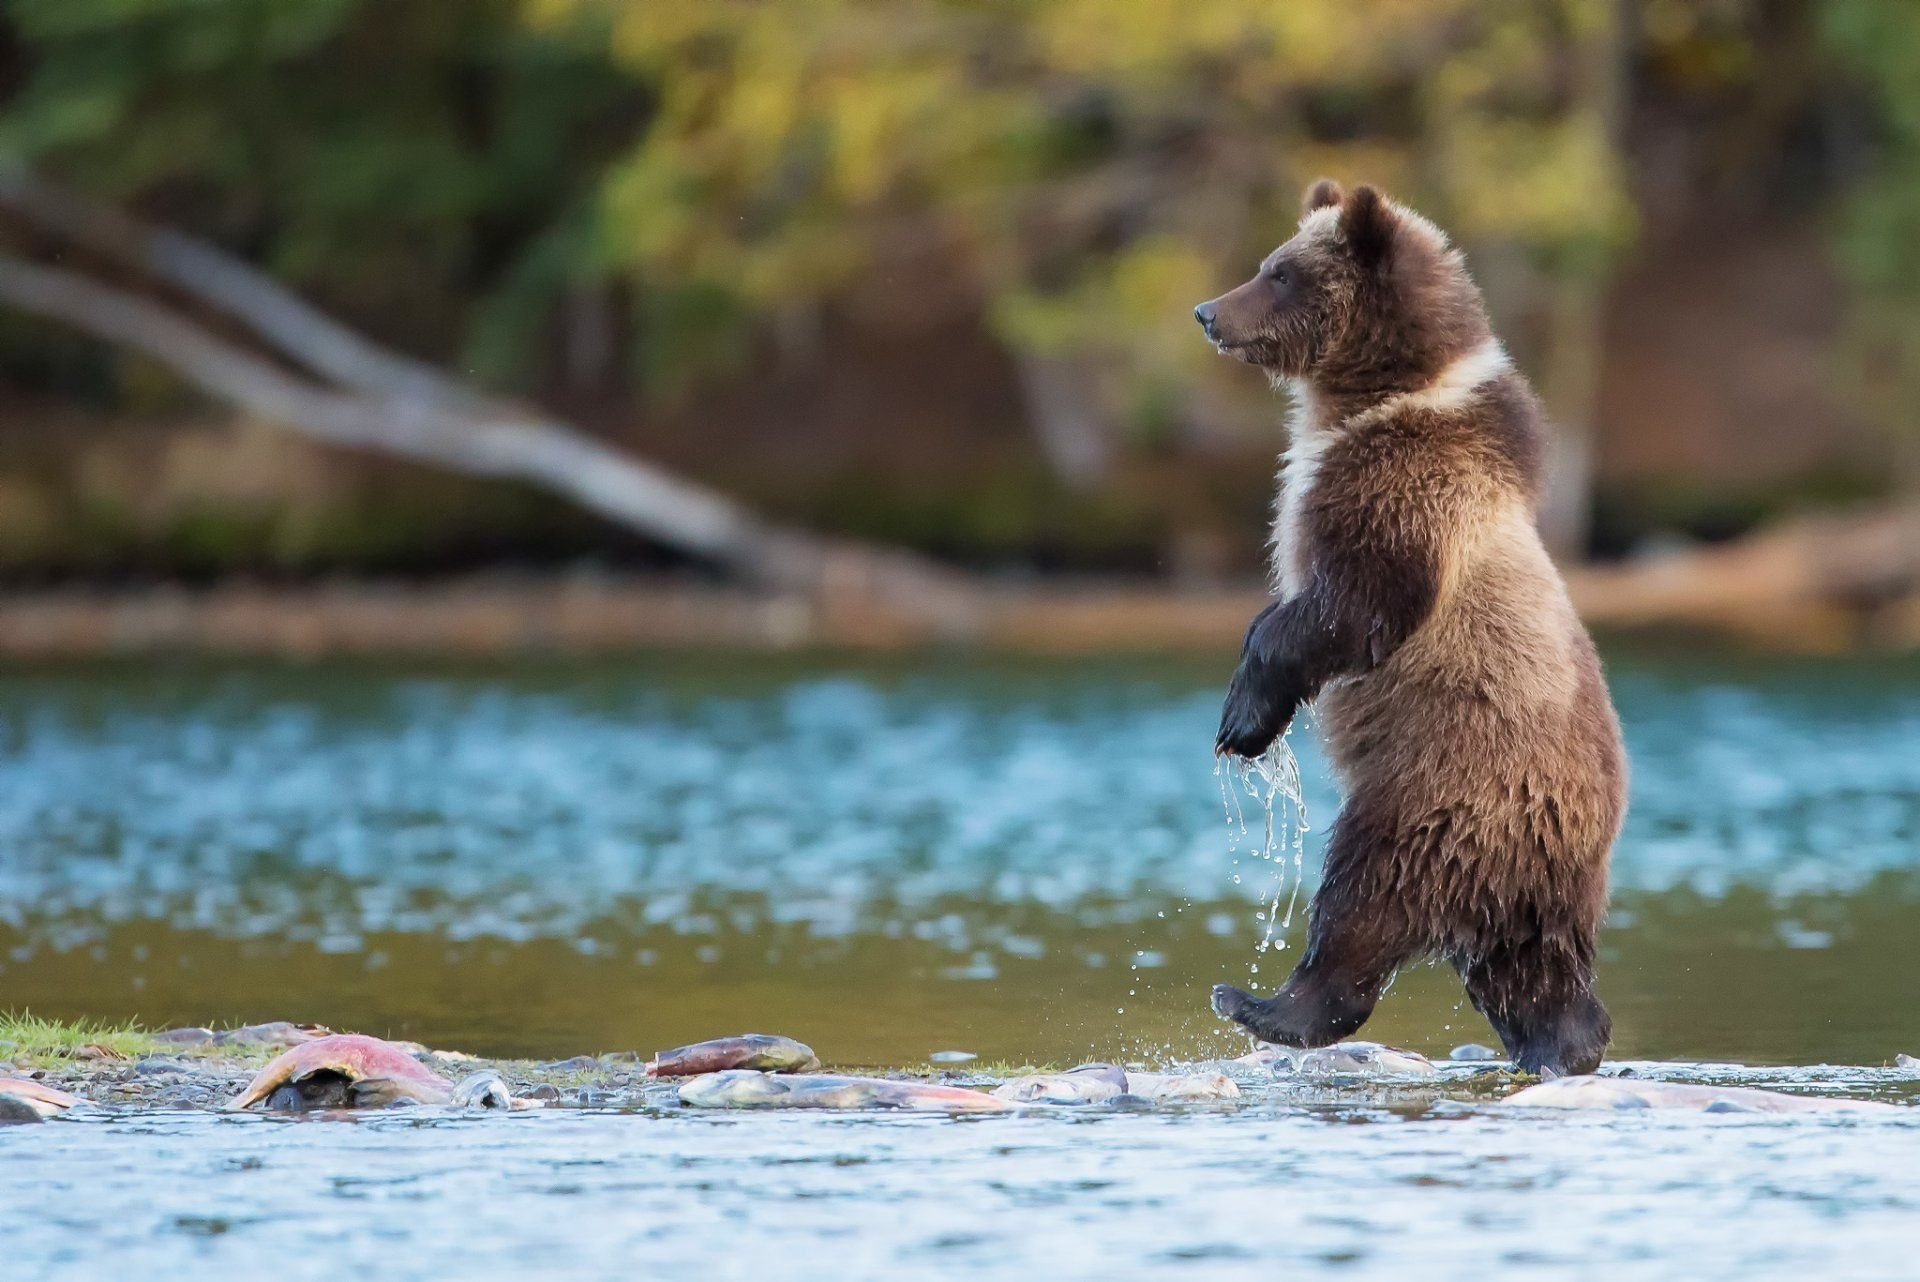 Res: 1920x1282, bear grizzly predator is canada river water fish nature